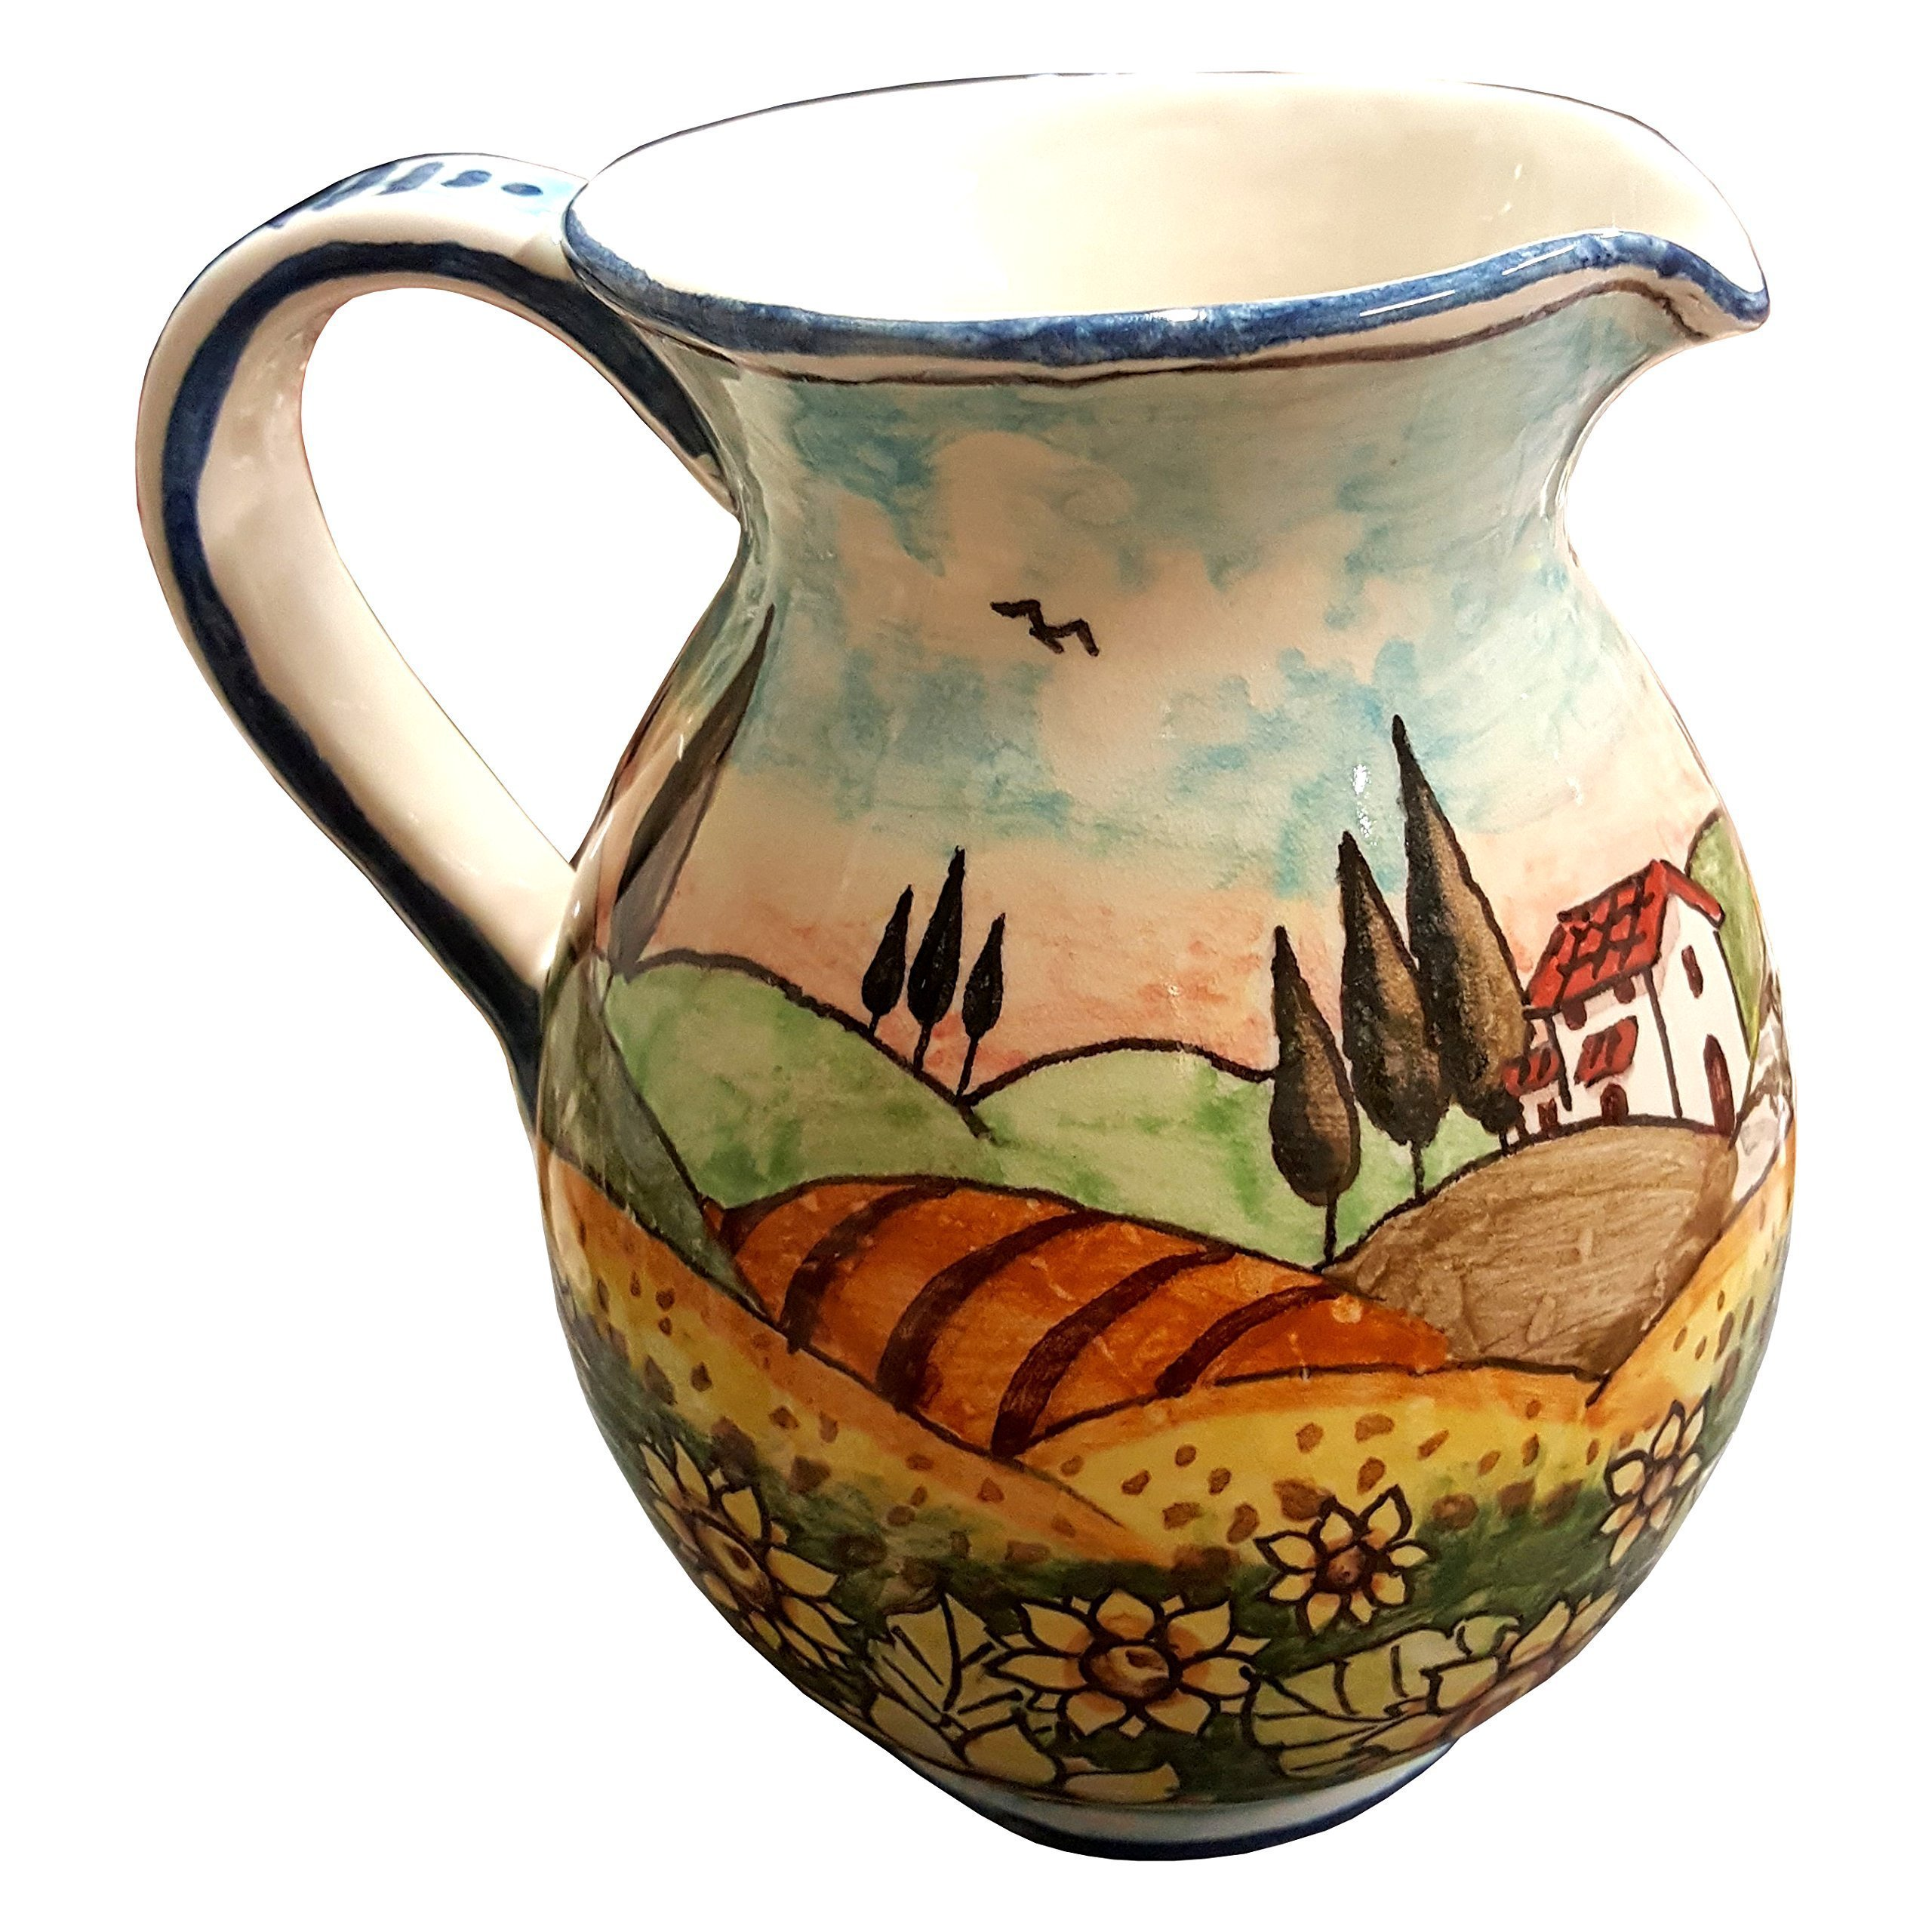 CERAMICHE D'ARTE PARRINI - Italian Ceramic Art Pottery Jar Pitcher Vino Vine 0.4 Gal Hand Painted Decorated Landscape Sunflowers Made in ITALY Tuscan